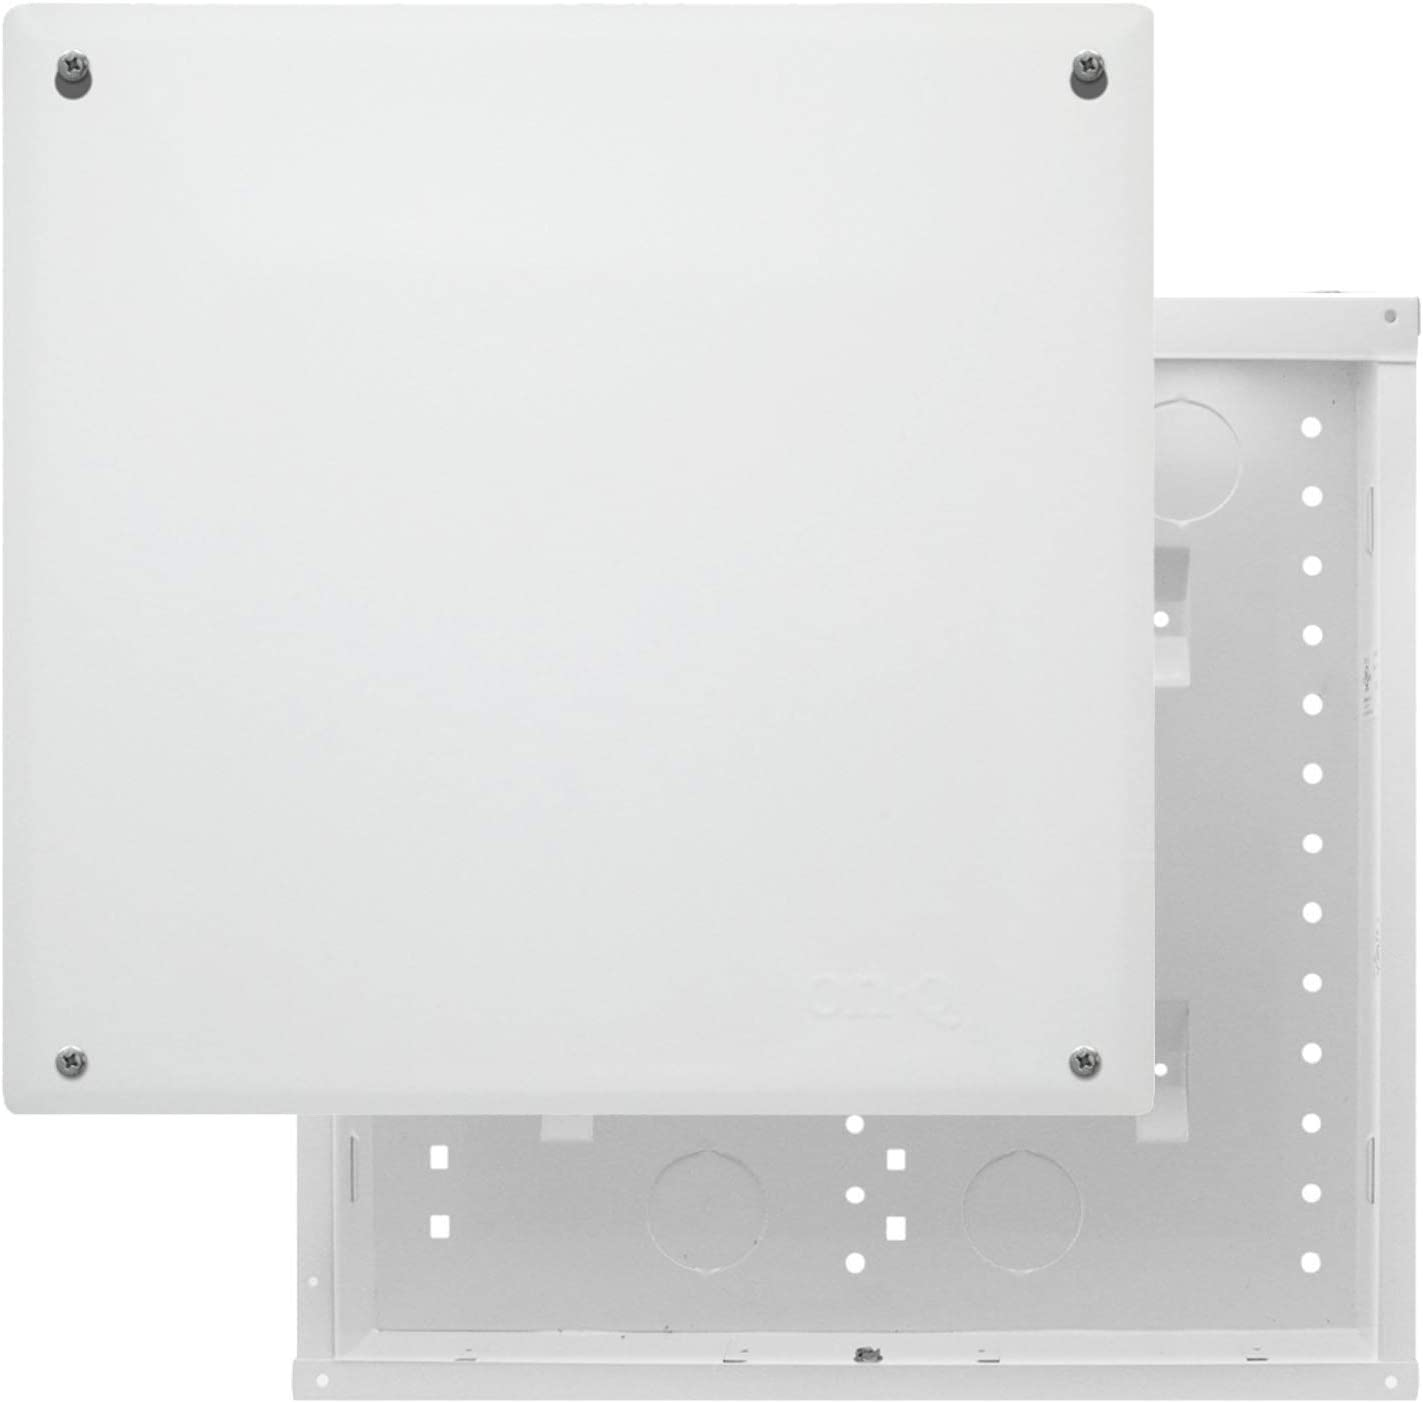 On-Q EN1400 EN 20 Gauge CRS Enclosure with Screw-On Cover, 14 inch, Glossy White